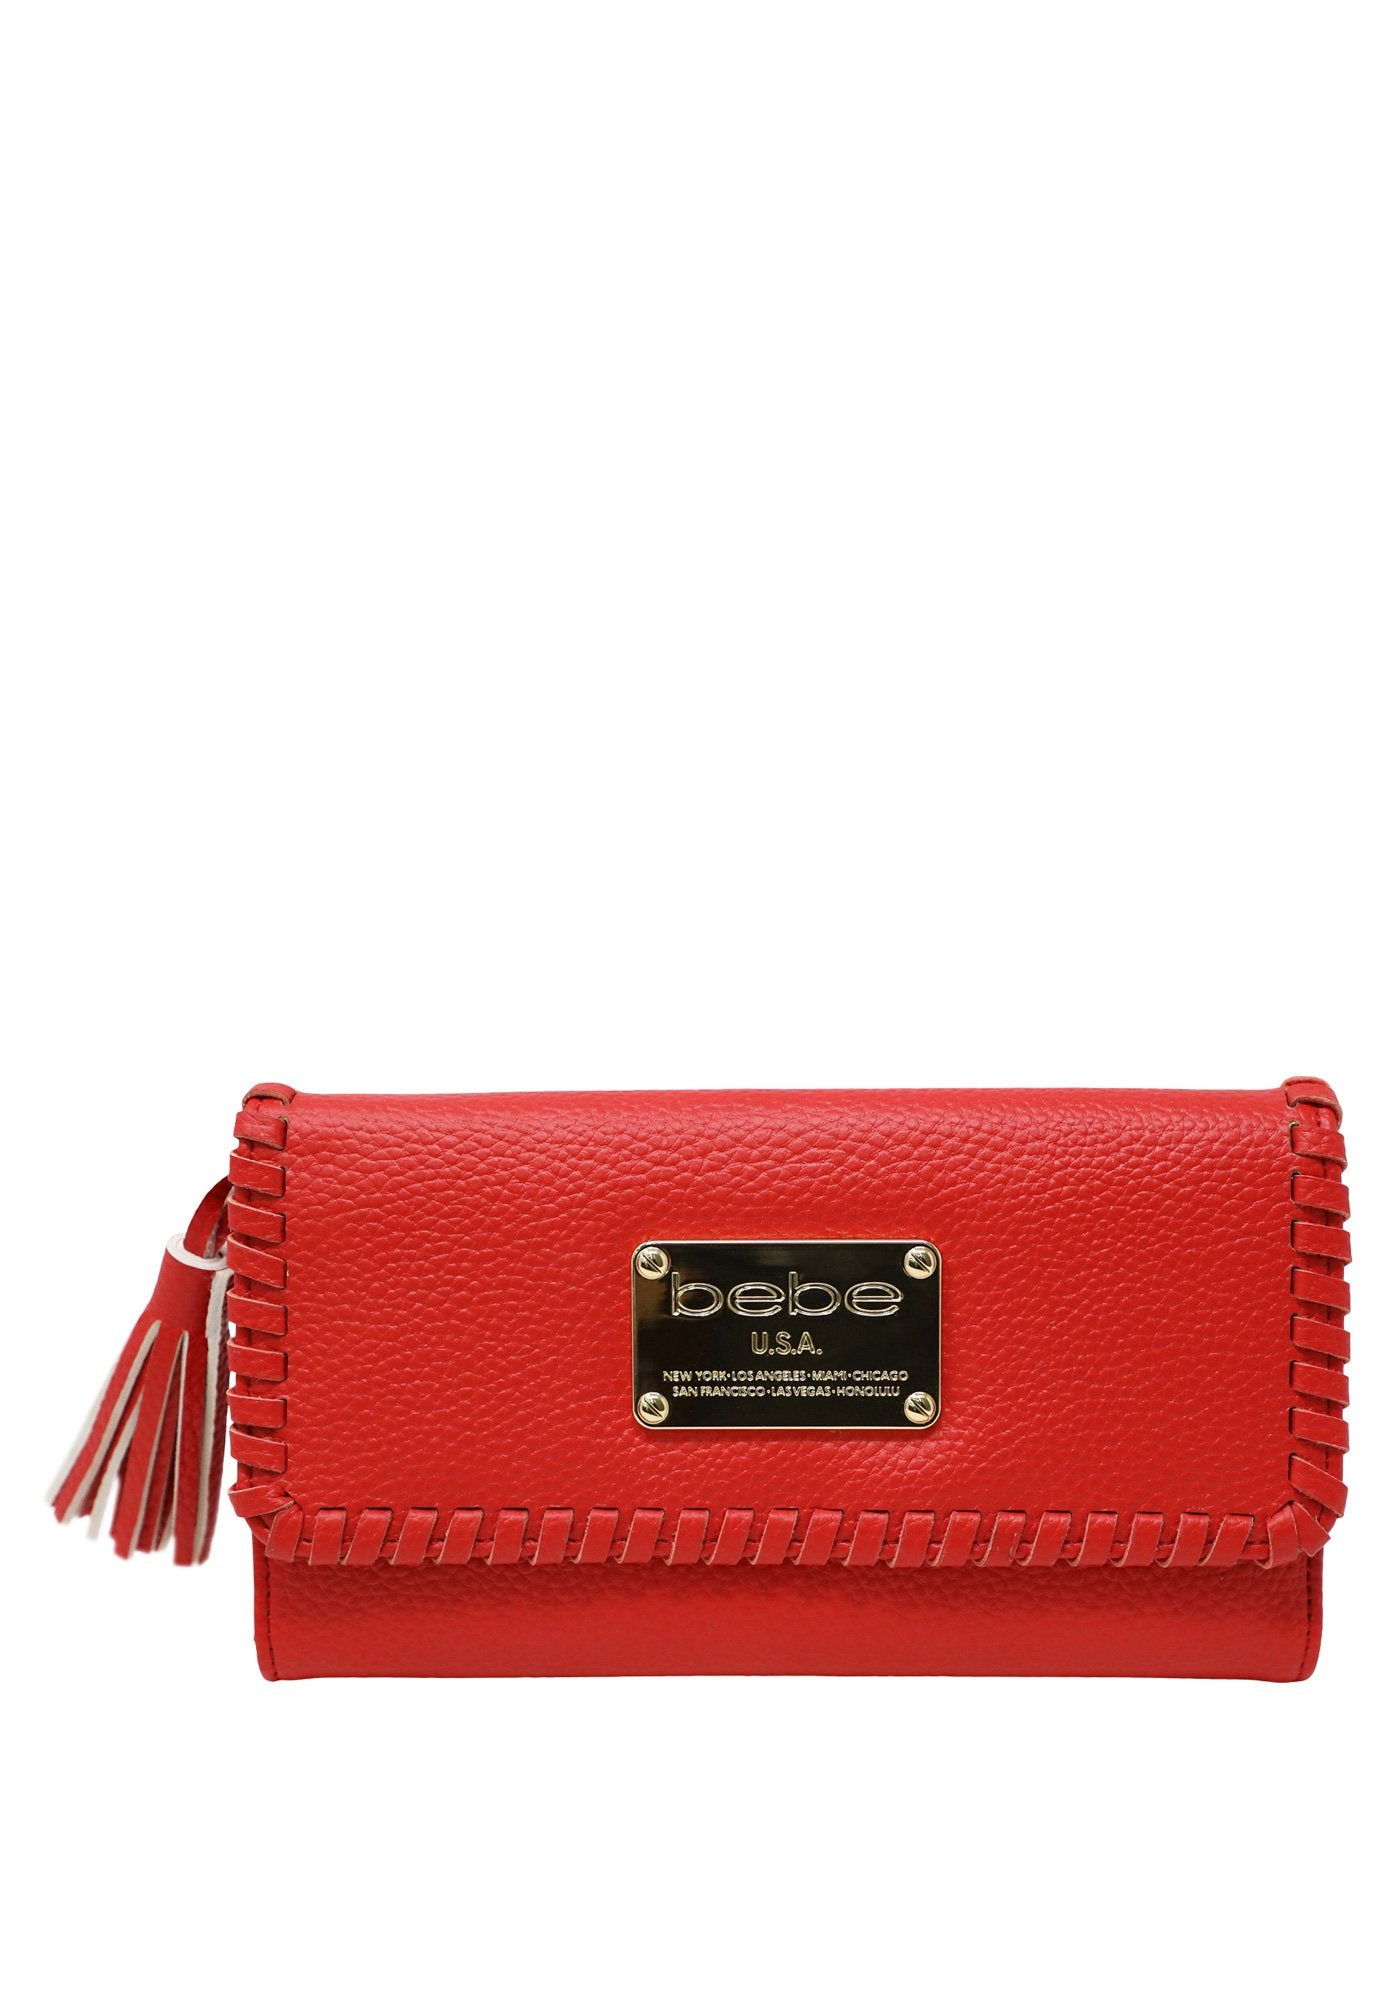 Bebe Women's Jayhud Wallet, Size O/S in Red Polyurethane